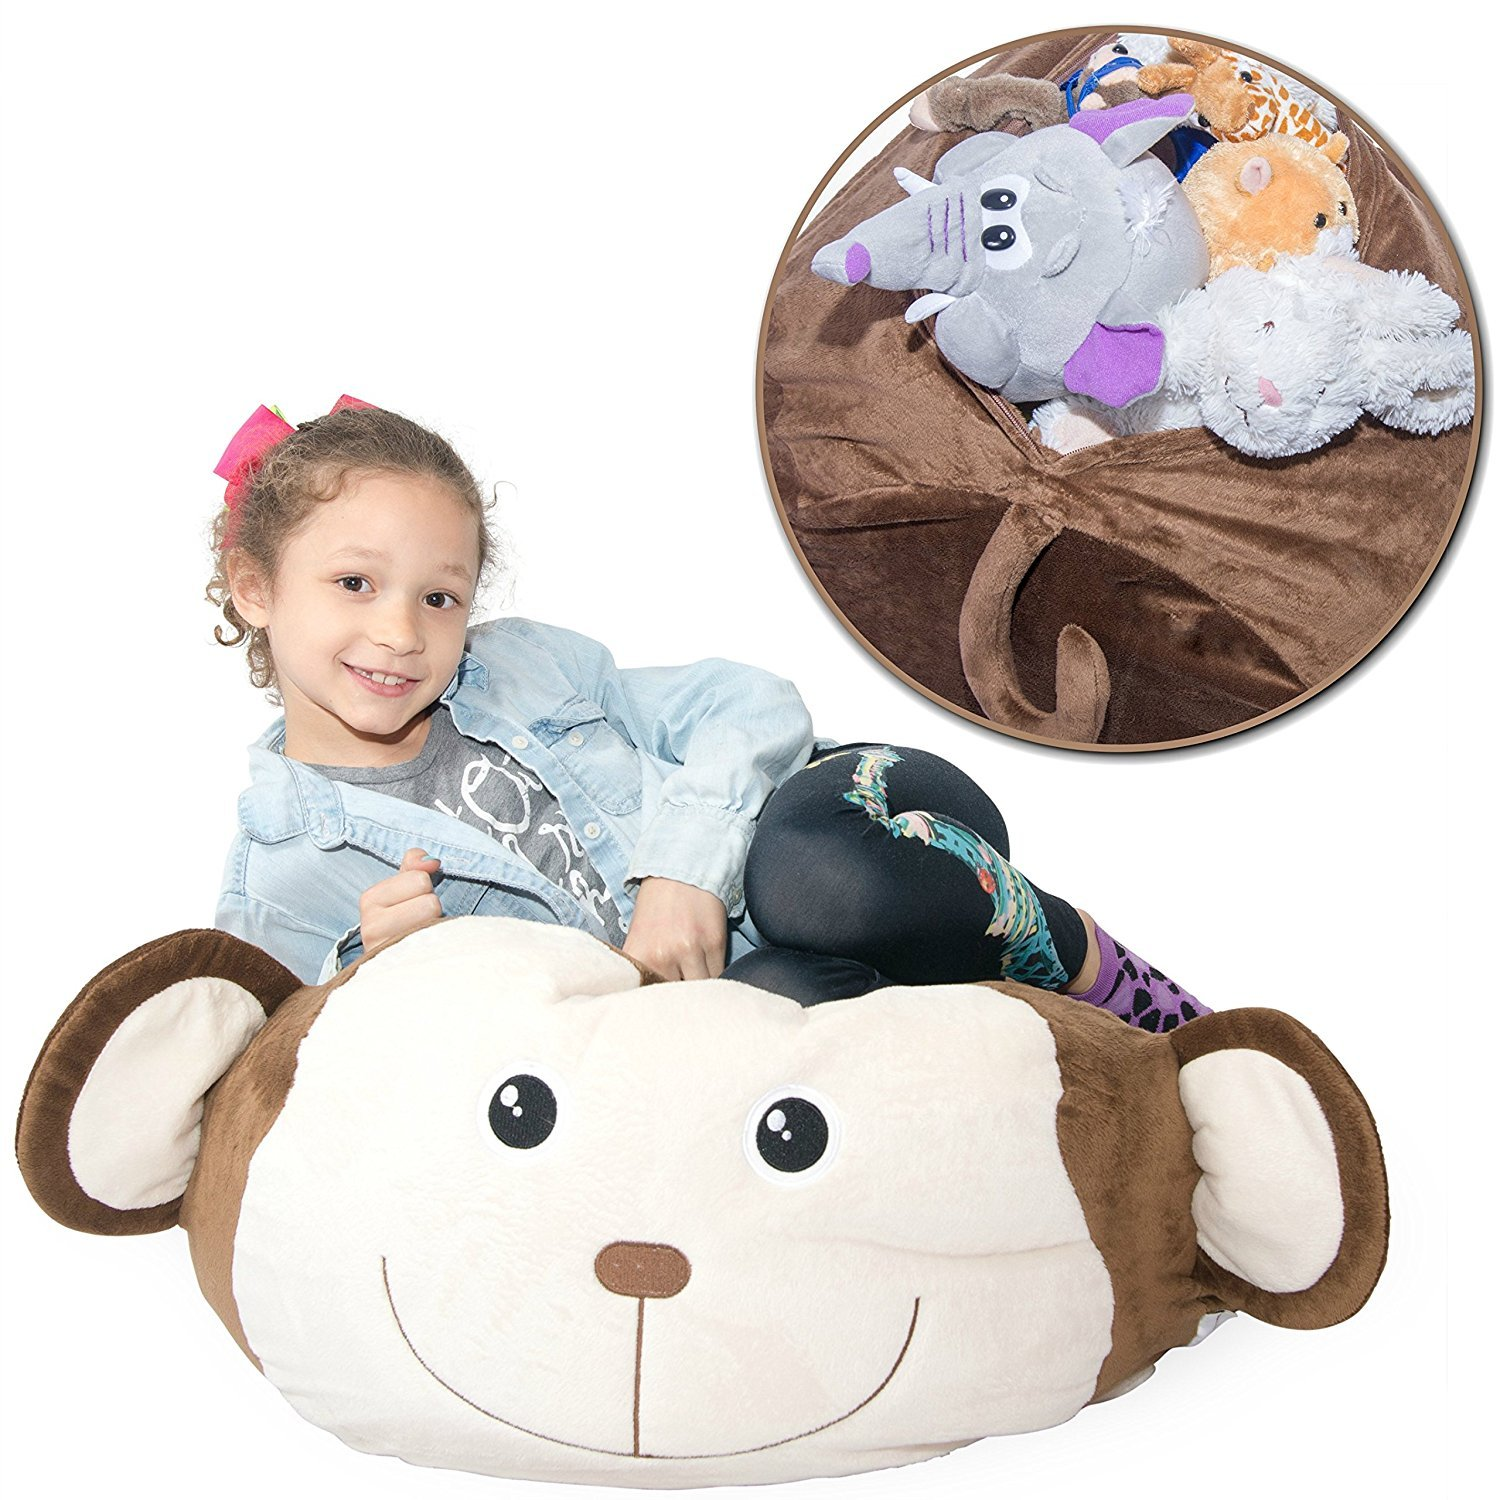 Jumbo Stuffed Animal Storage Bean Bag Chair - Super SOFT Fabric Kids Love - 3 Plush Animal Choices - Replace Your Mesh Toy Hammock or Net - Store Extra Blankets & Pillows Too